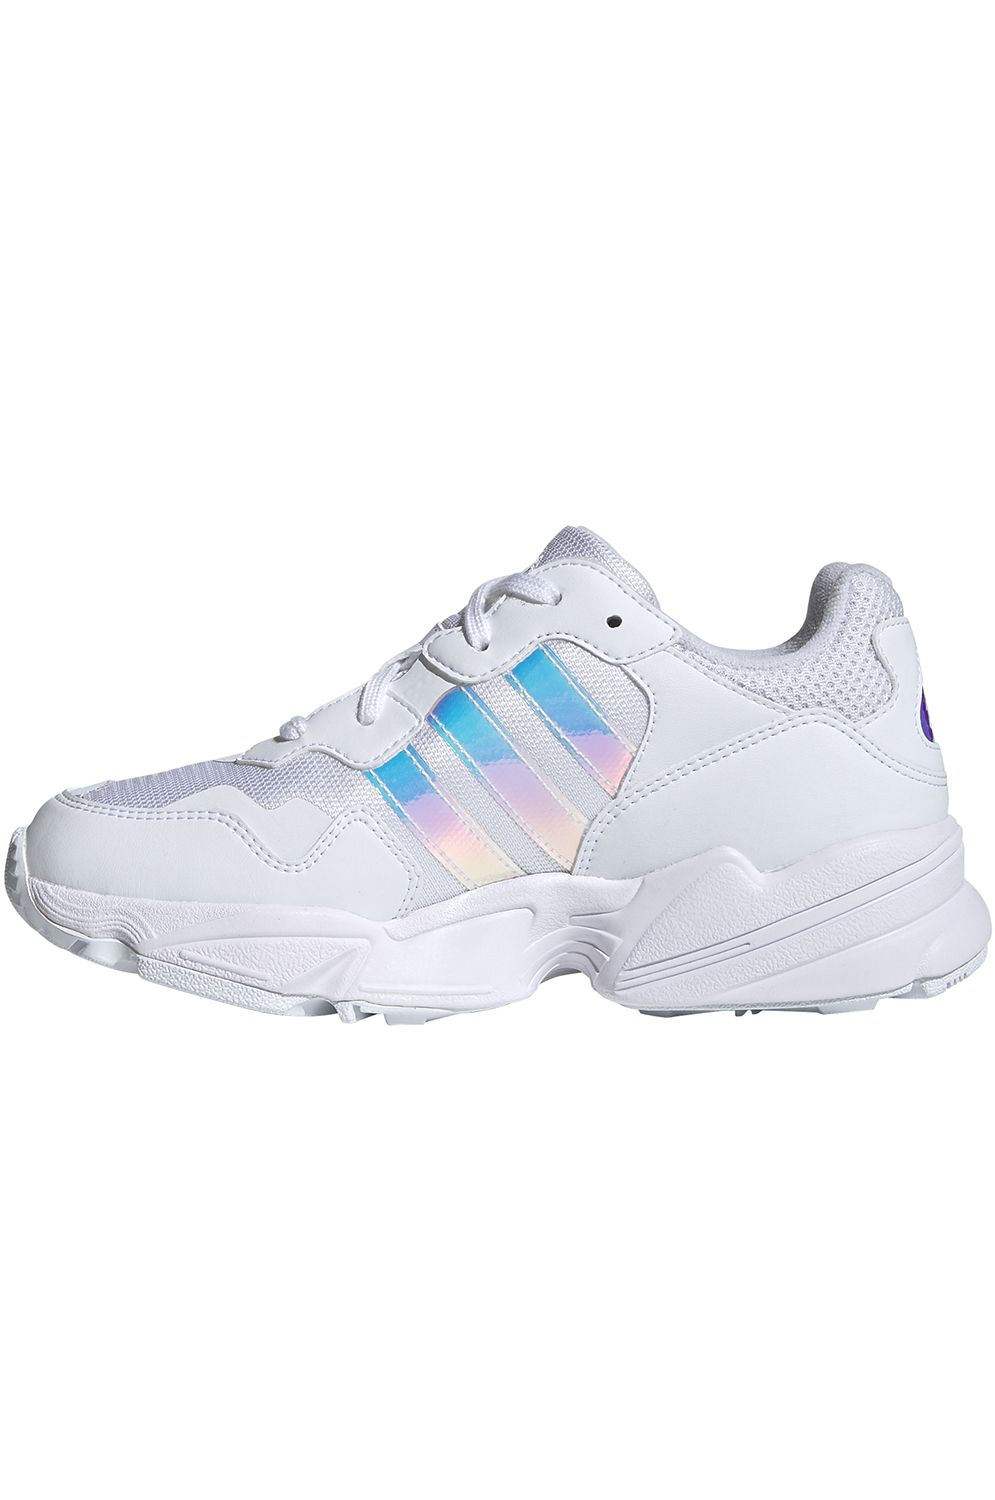 Tenis Adidas YUNG-96 Ftwr White/Ftwr White/Core Black